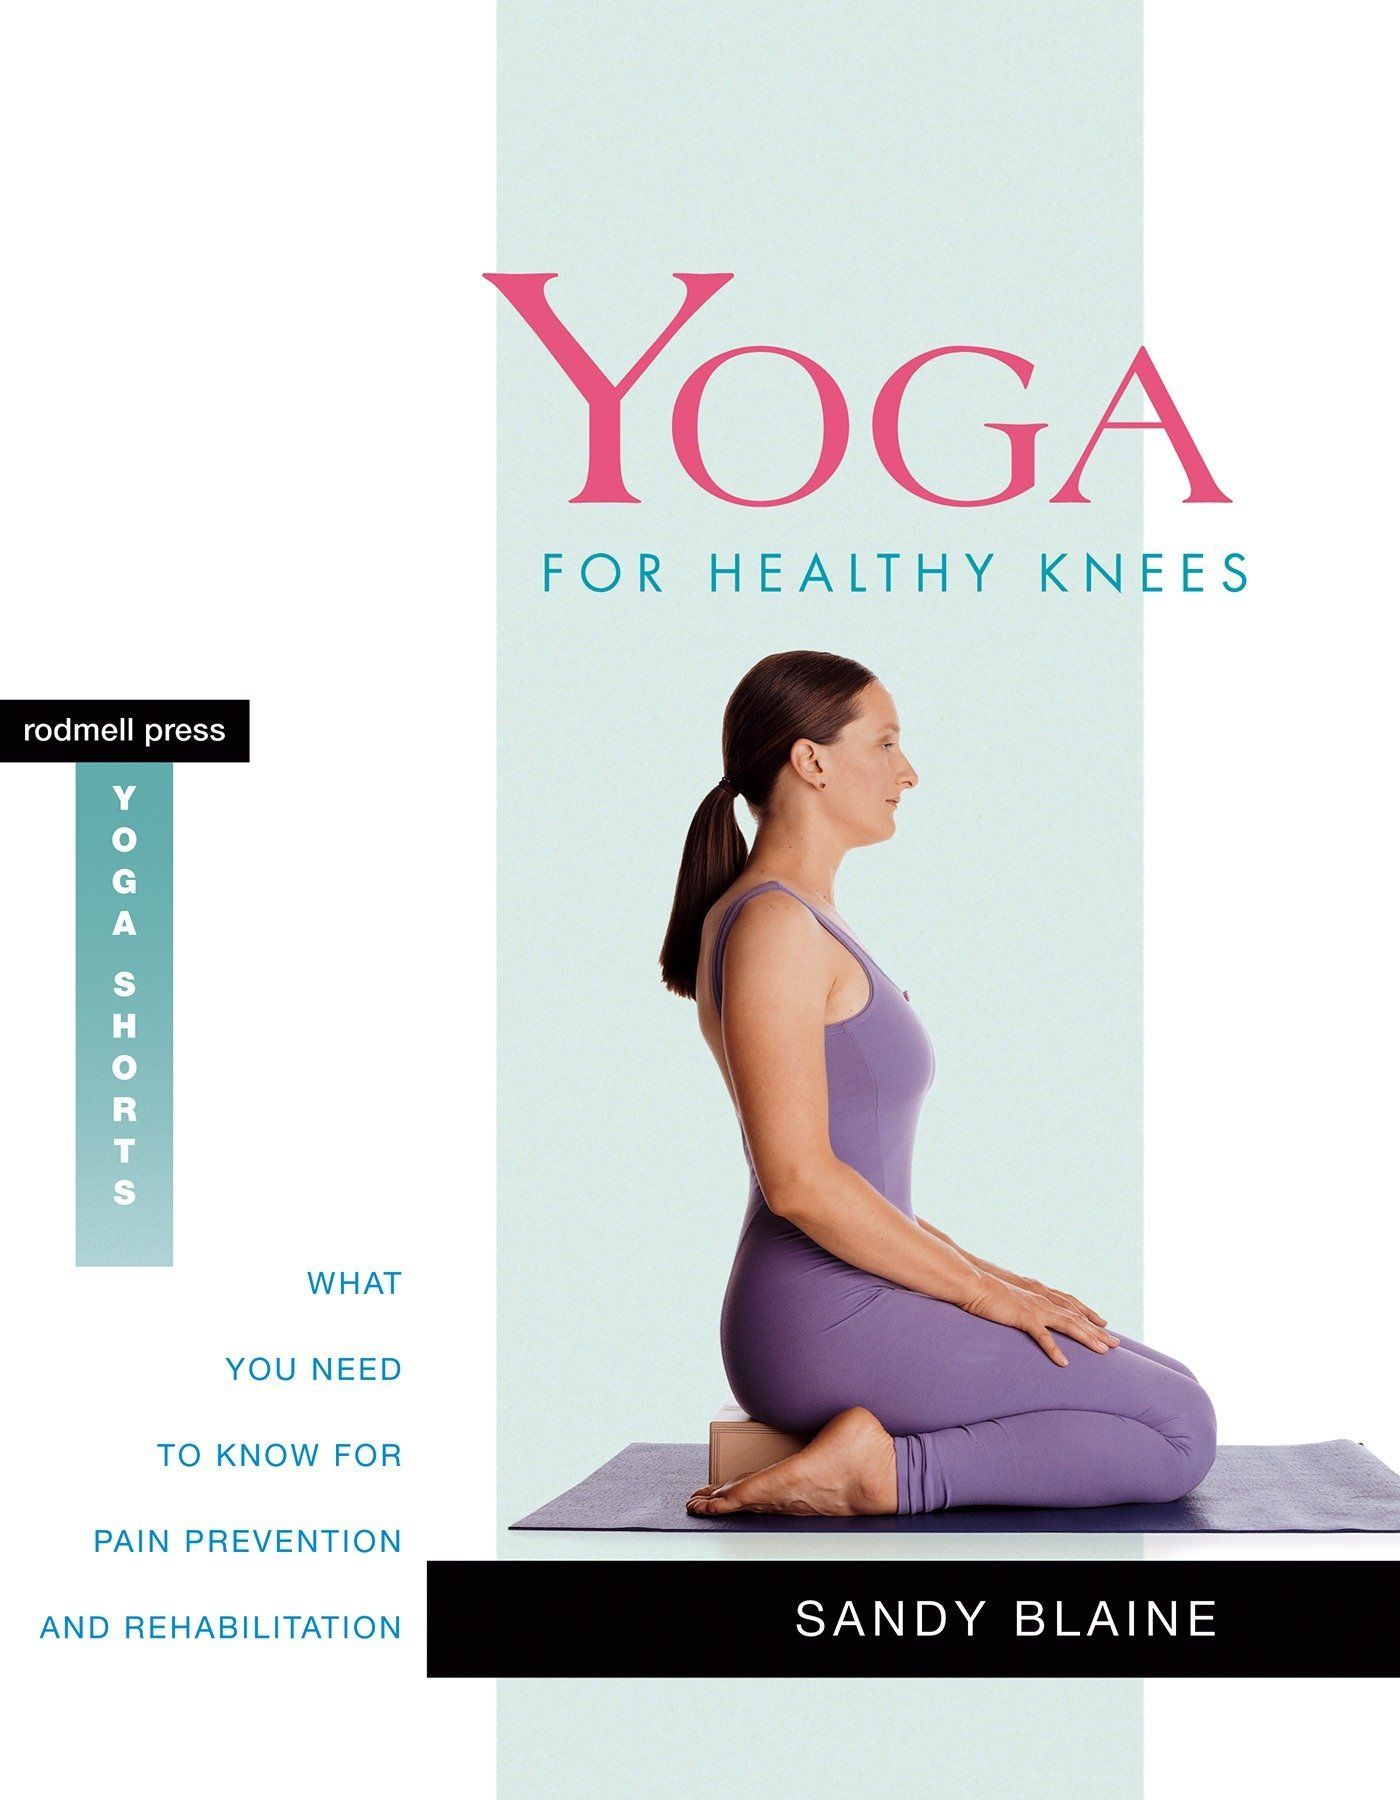 Yoga For Healthy Knees What You Need To Know For Pain Prevention And Rehabilitation Rodmell Press Yoga Shorts Amazon Co Uk Sandy Blaine 9781930485082 Books